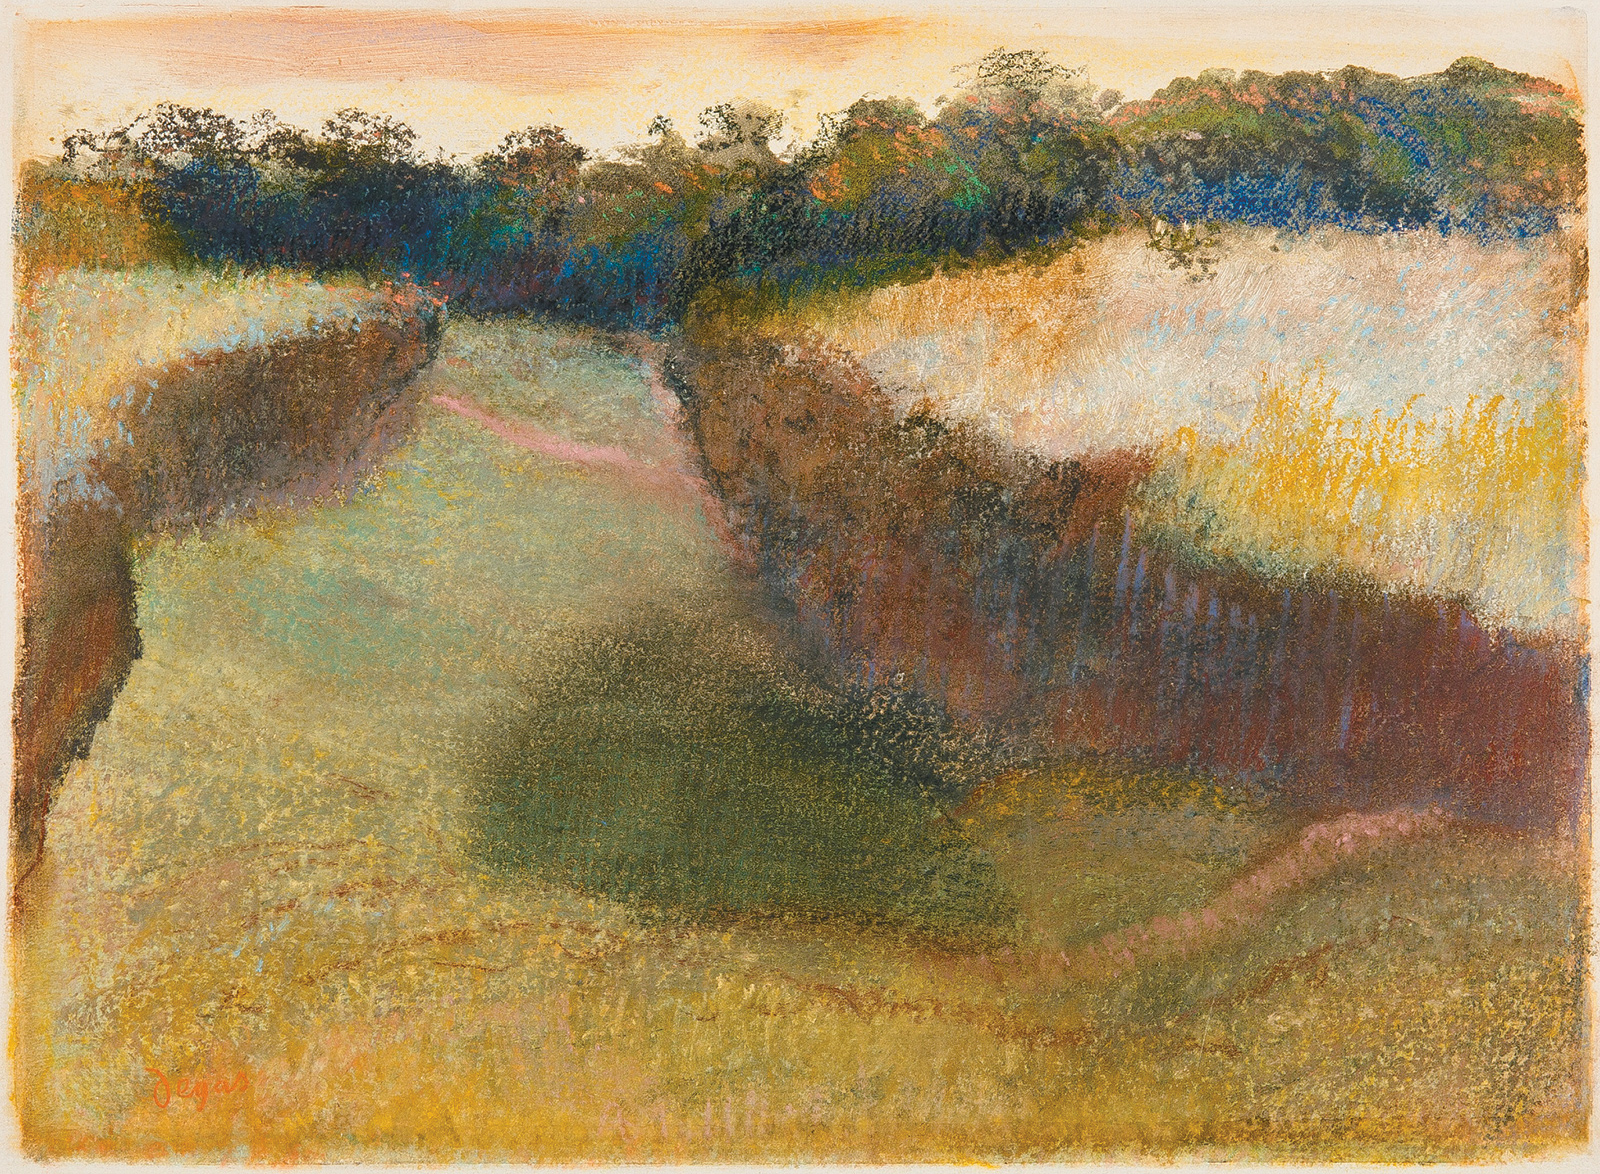 Edgar Degas: Wheatfield and Line of Trees, pastel over monotype in oil on paper, 1890